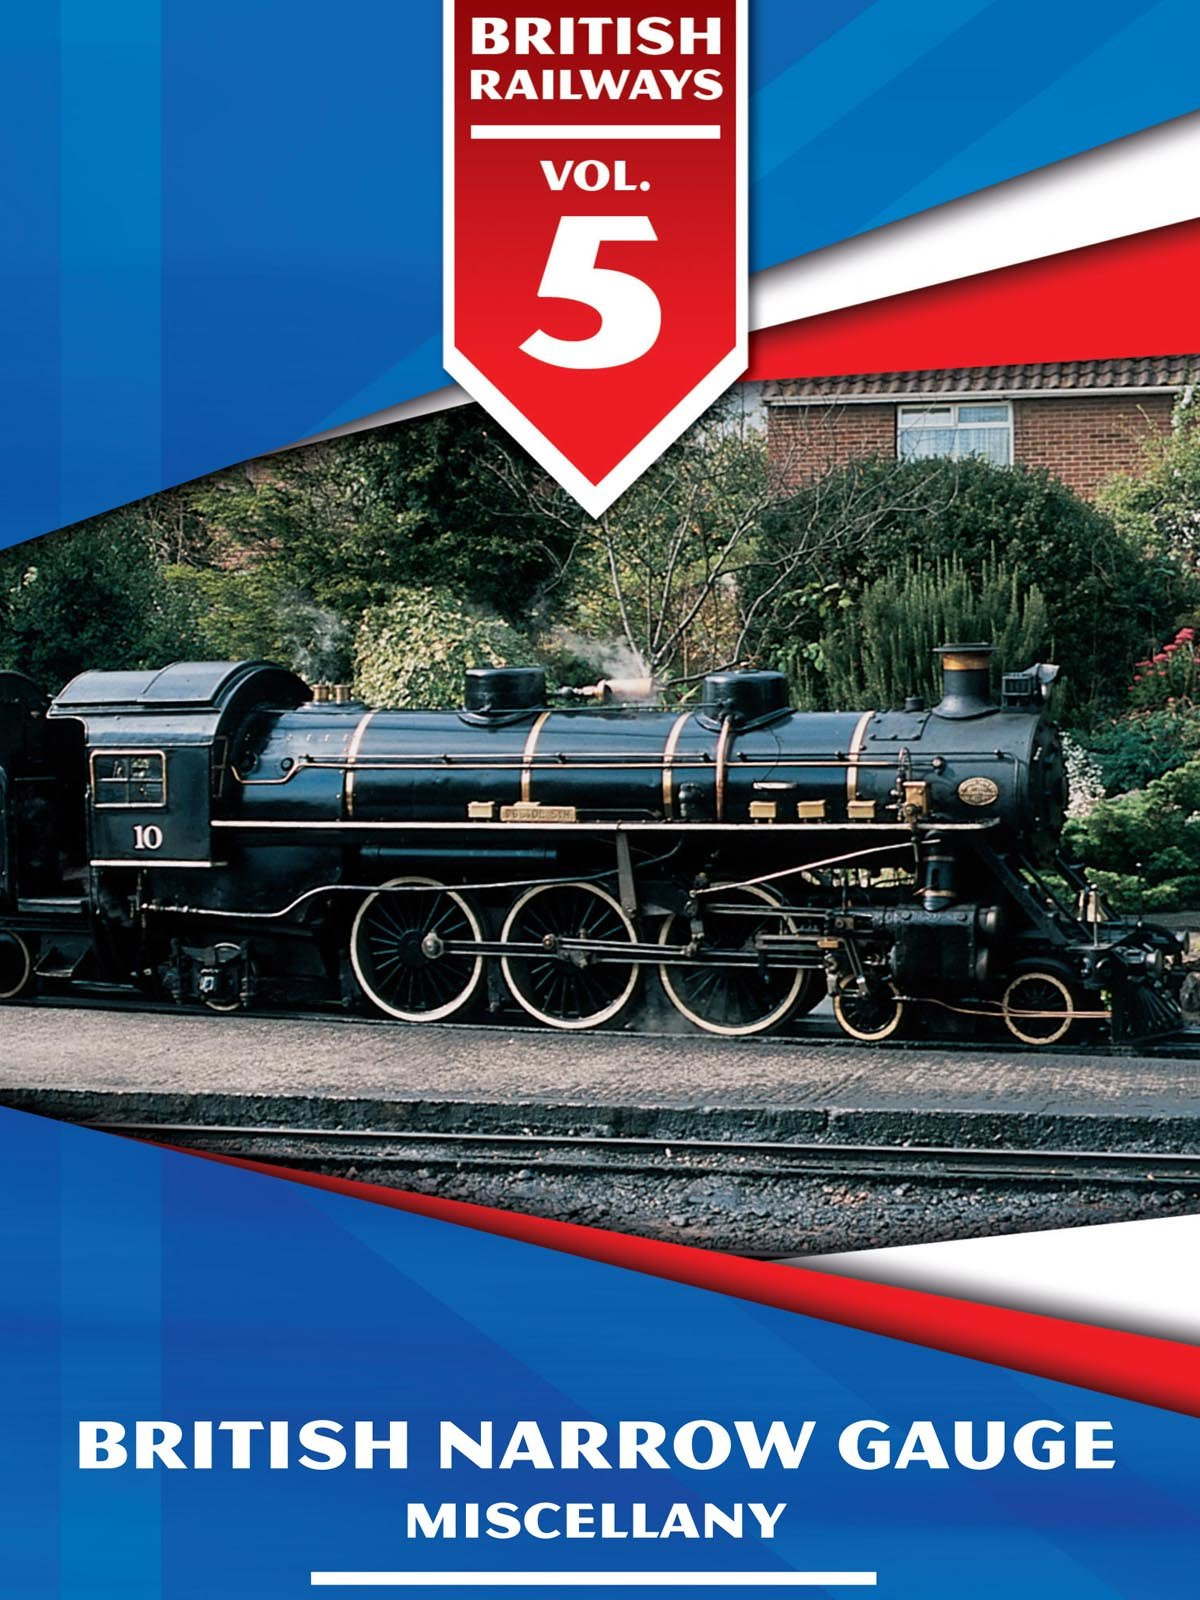 British Railways Volume 5: British Narrow Gauge Miscellany on Amazon Prime Video UK